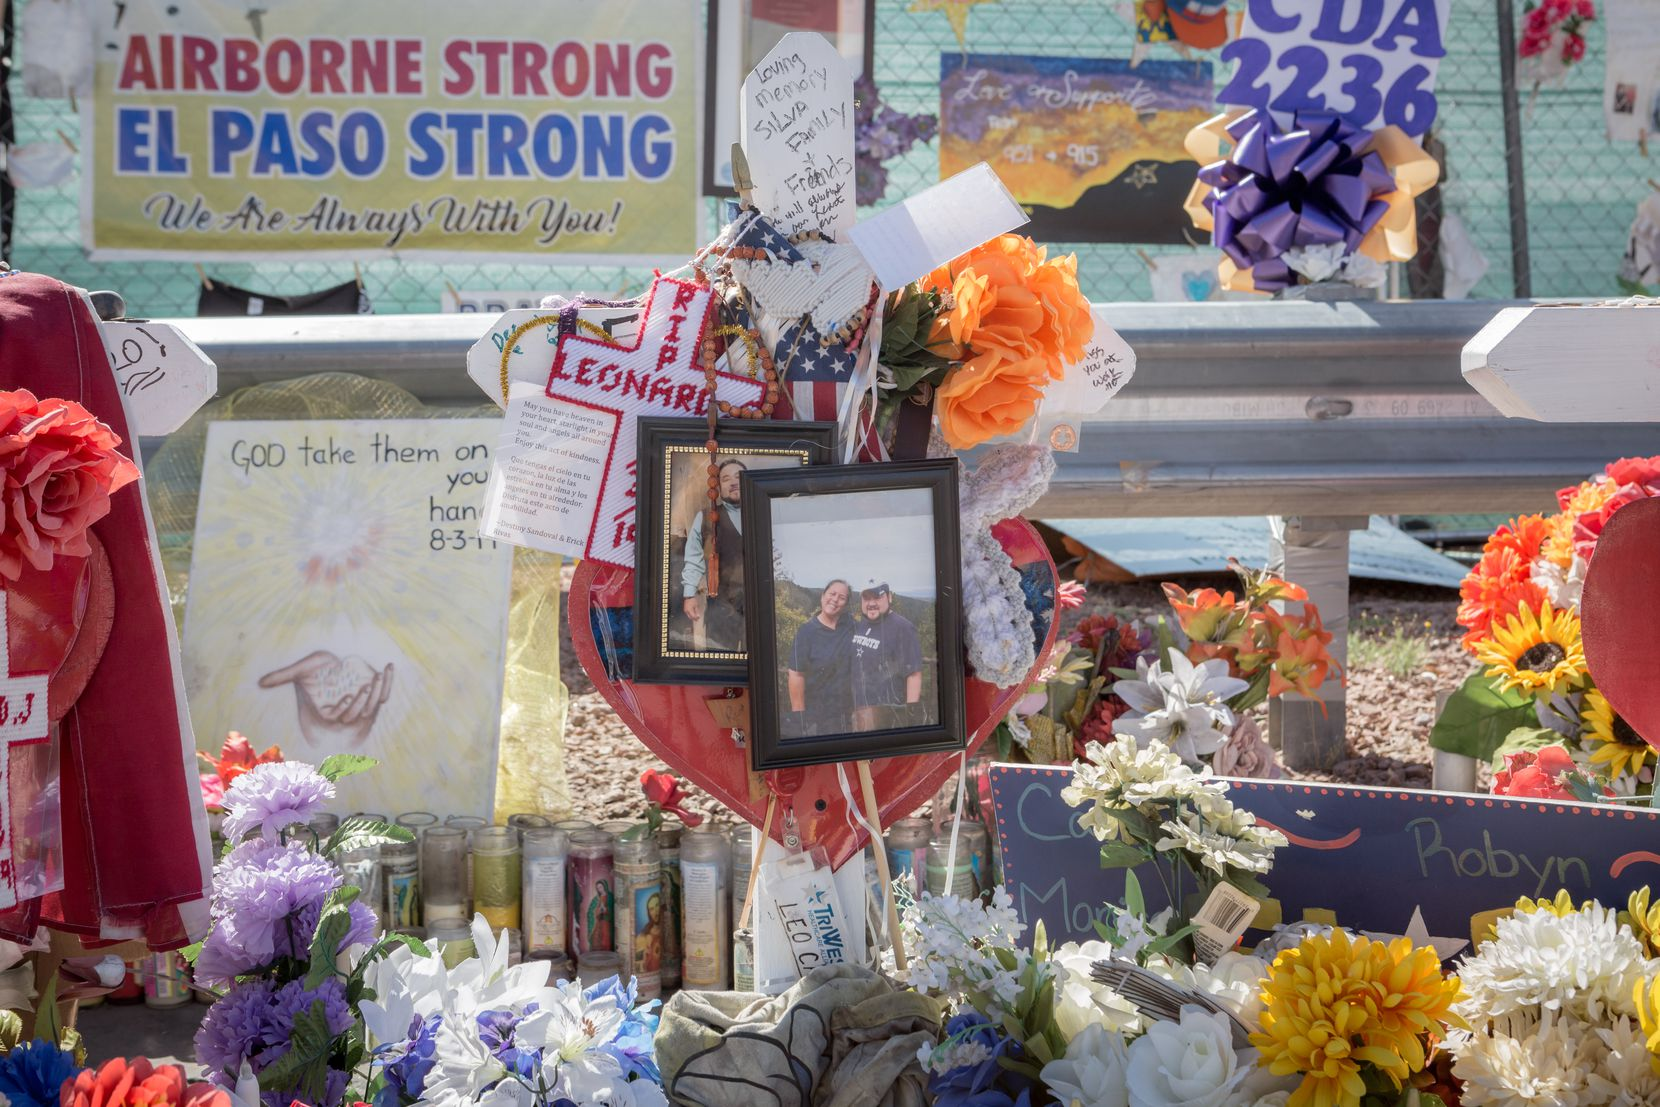 Friends and family of the victims visited the memorial for the Dia de los Muertos celebration in El Paso on Saturday, Nov. 2, 2019.